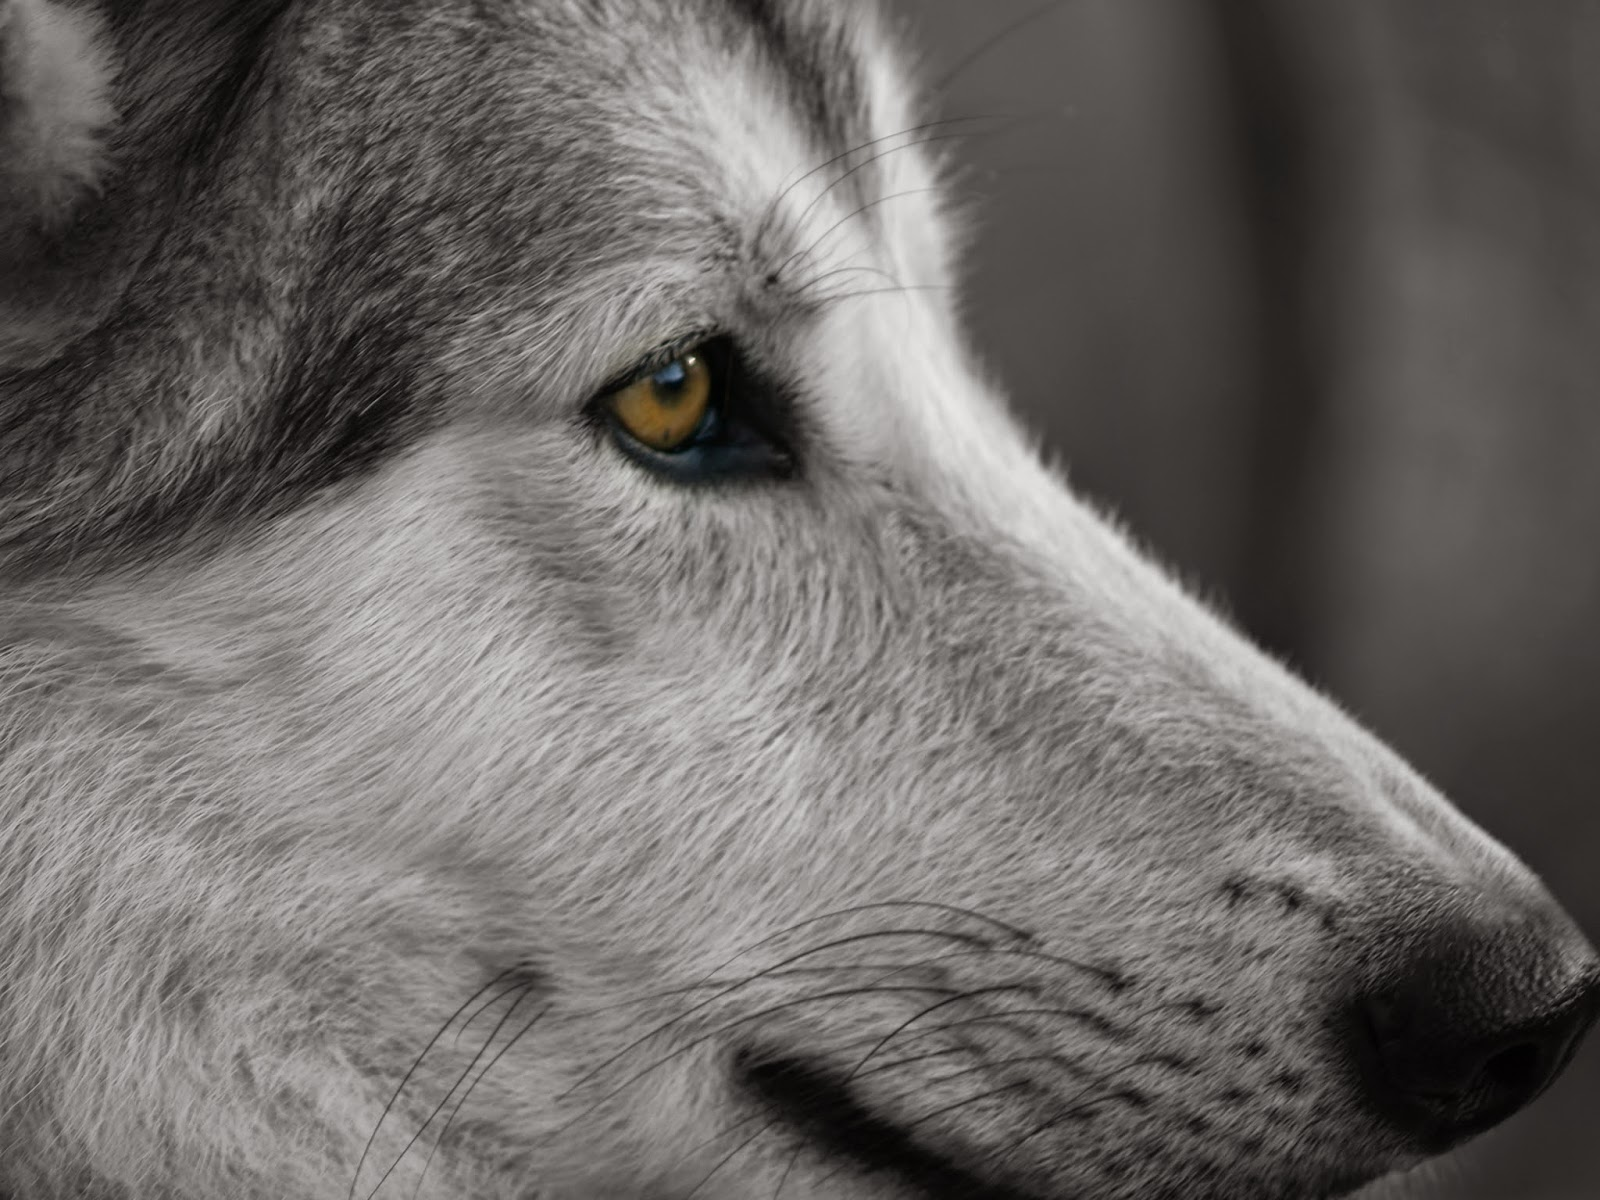 wolfdog eye color